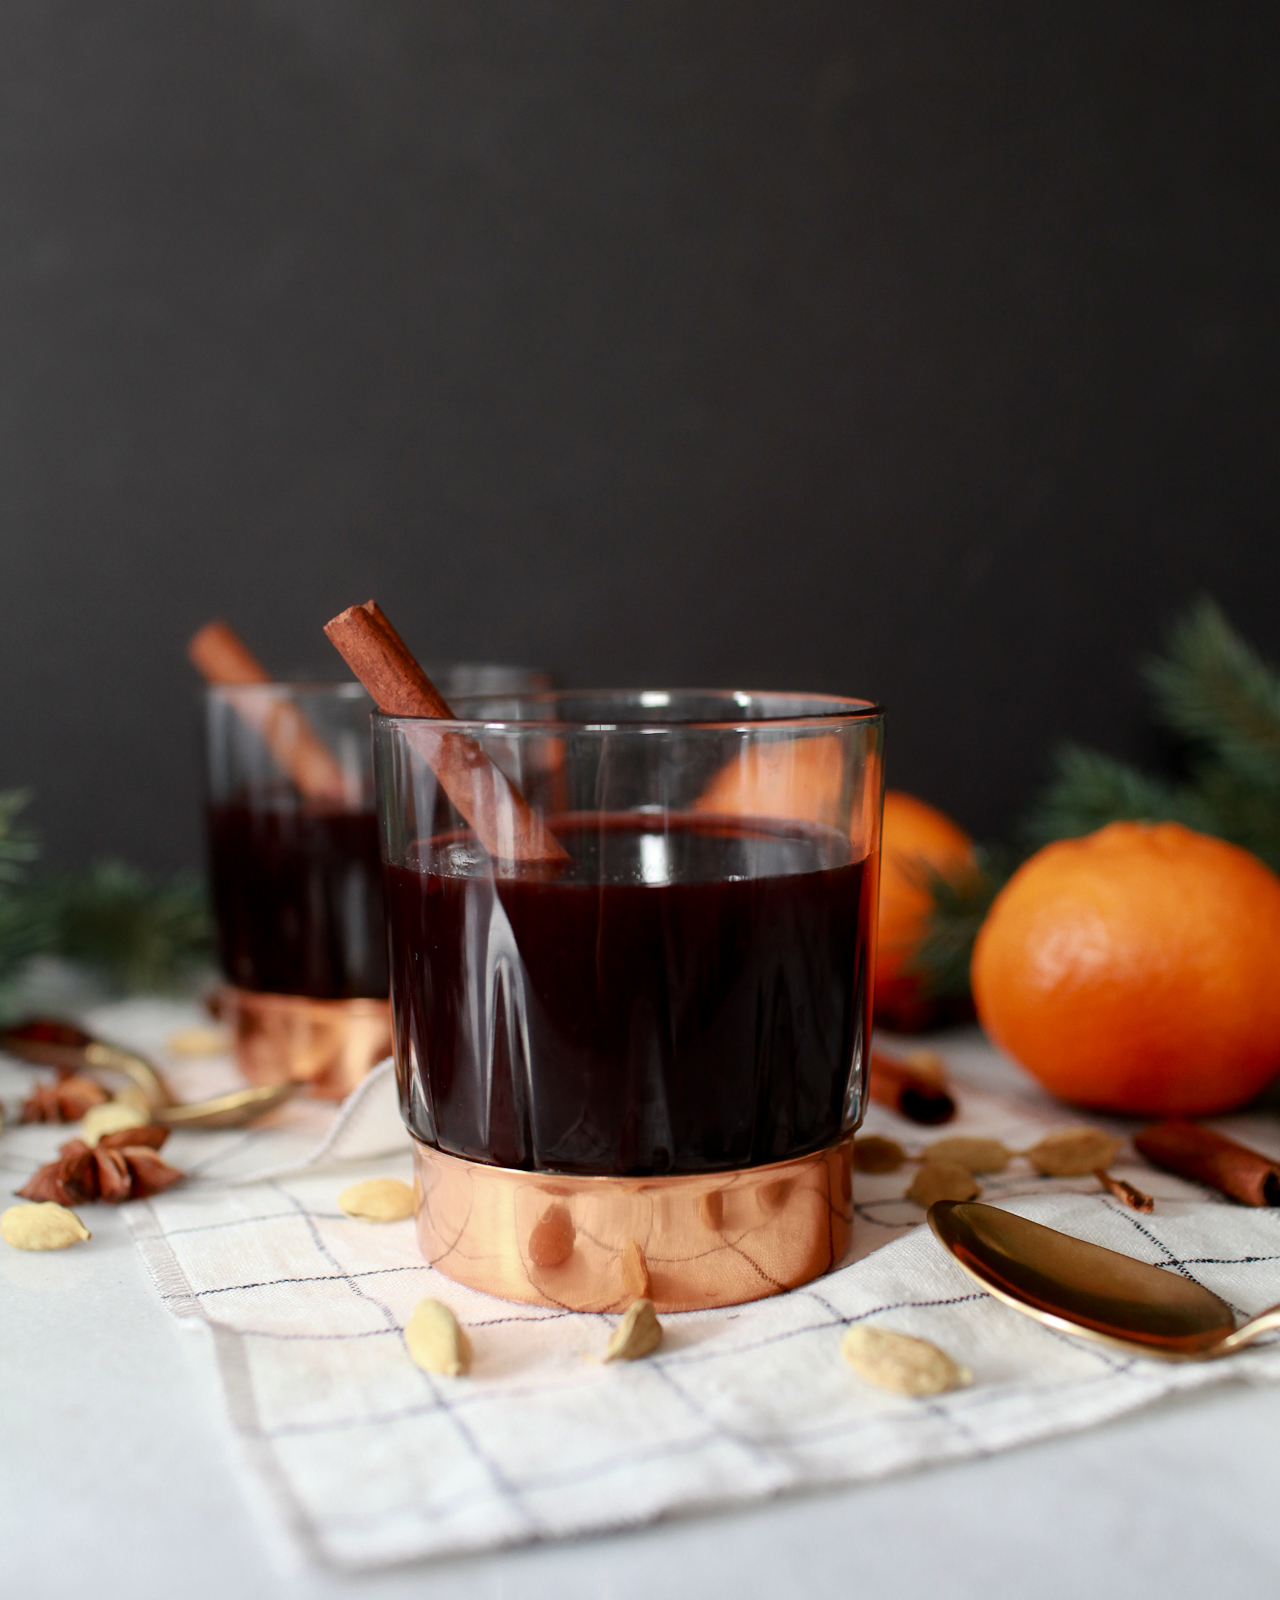 Swedish Mulled Wine Glogg Recipe / Hygge Cocktail Ideas